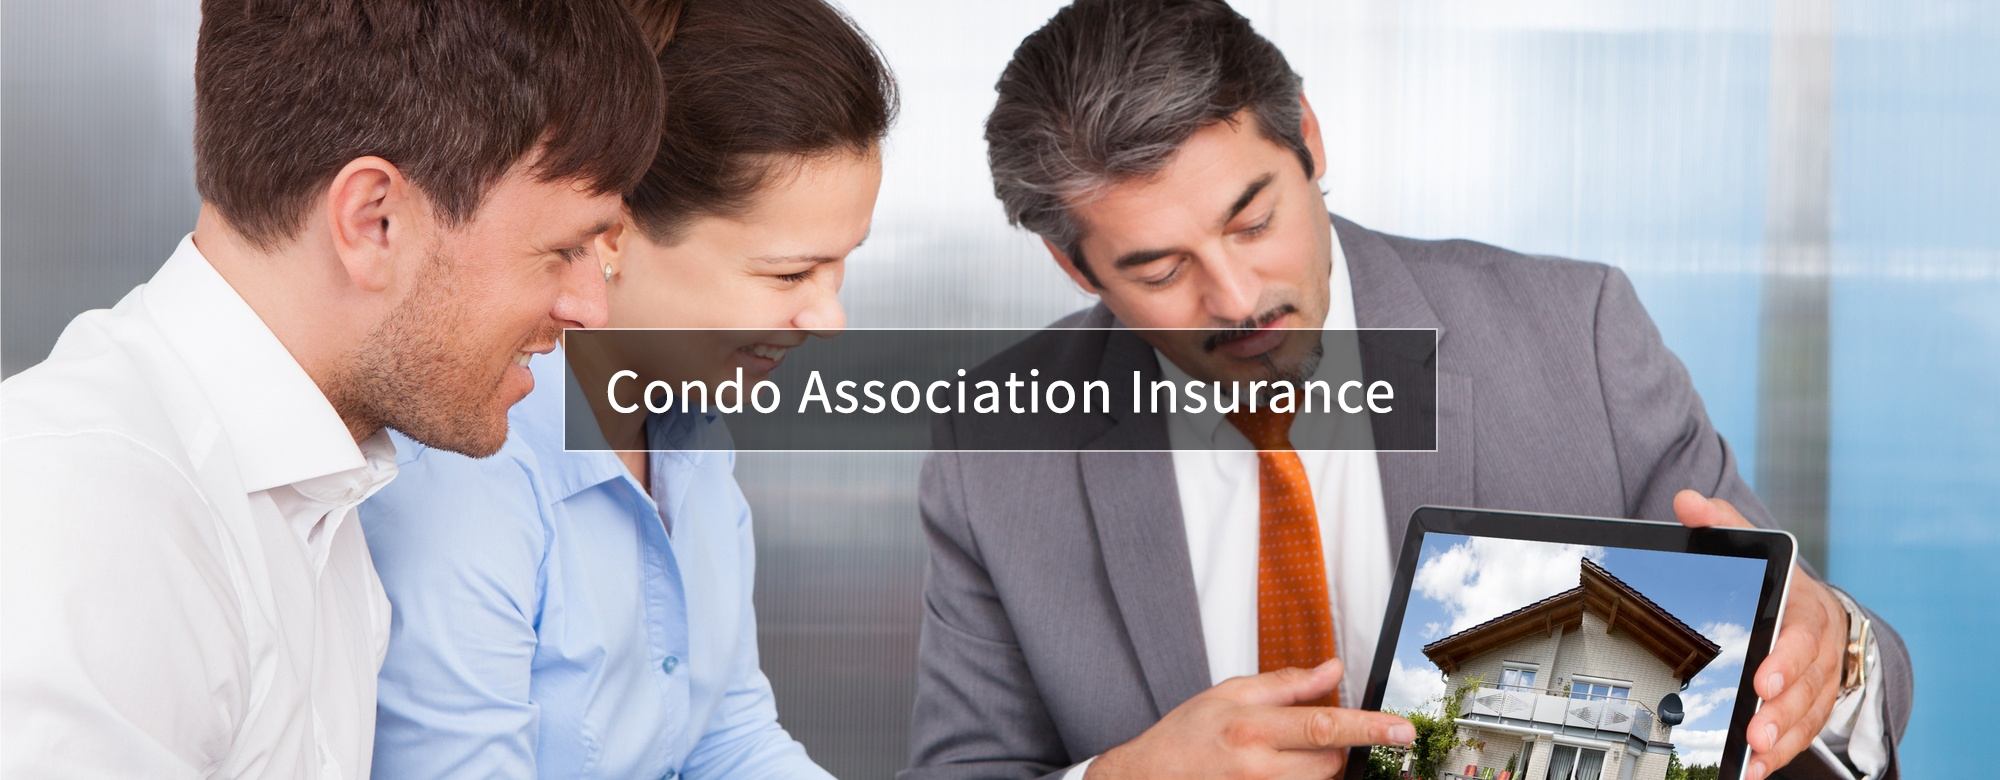 Condo Association Insurance inMassachusetts